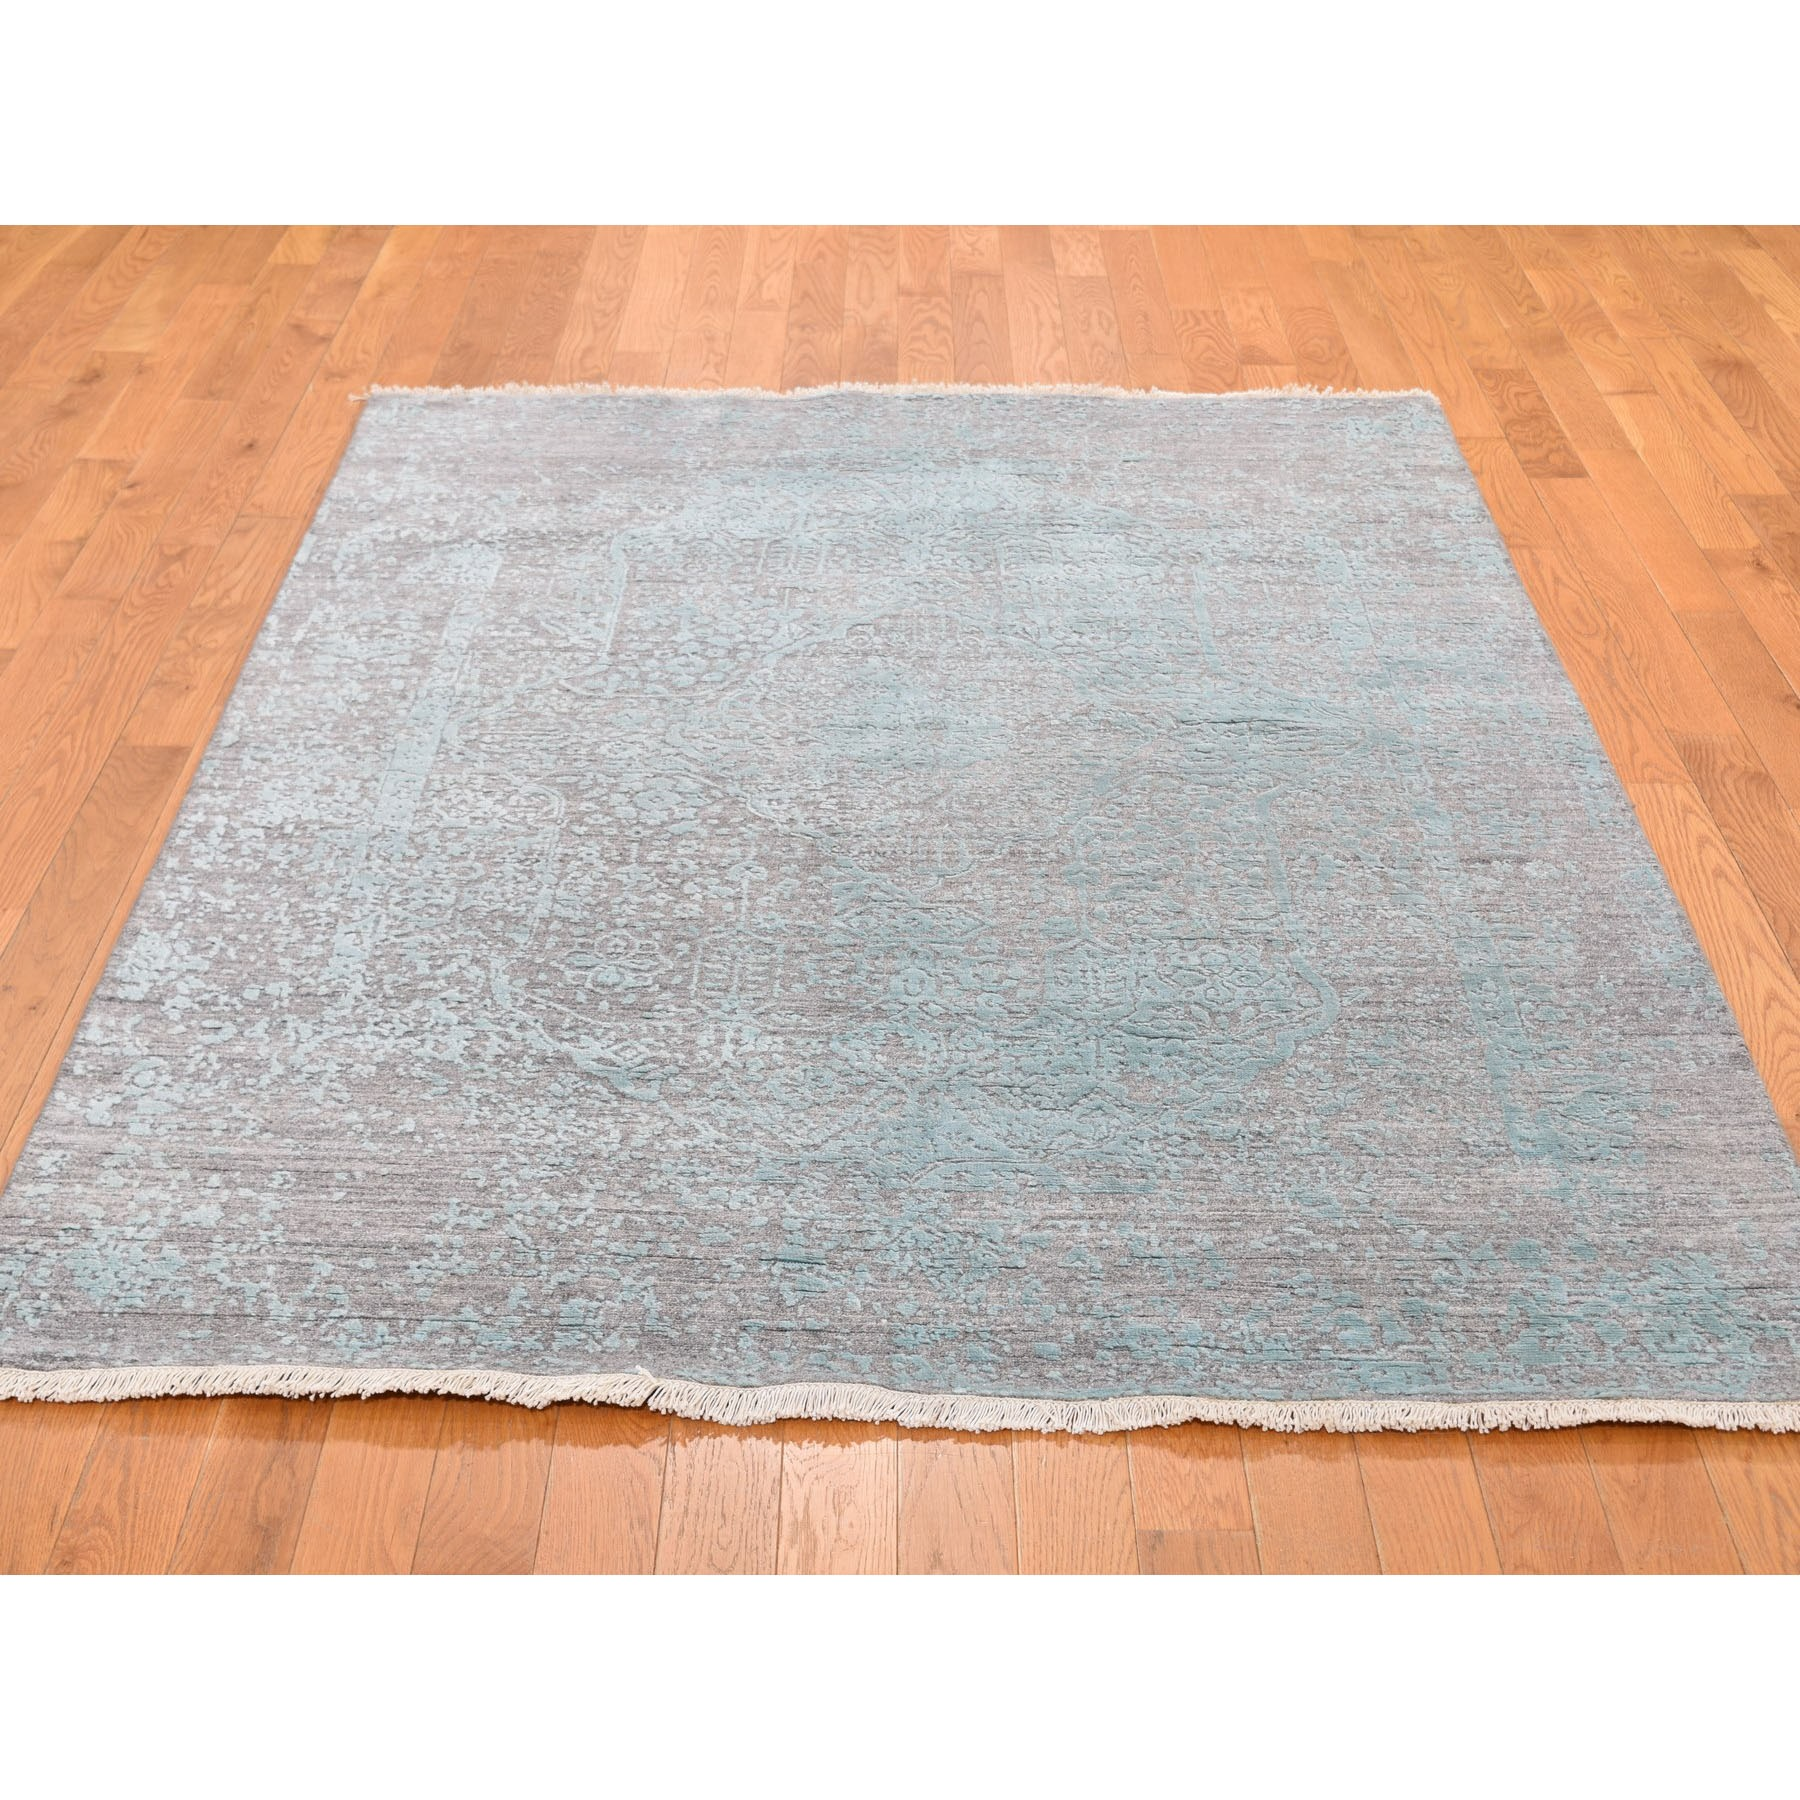 "4'10""x7'1"" Wool and Silk Hand Knotted Broken Persian Design Oriental Rug"